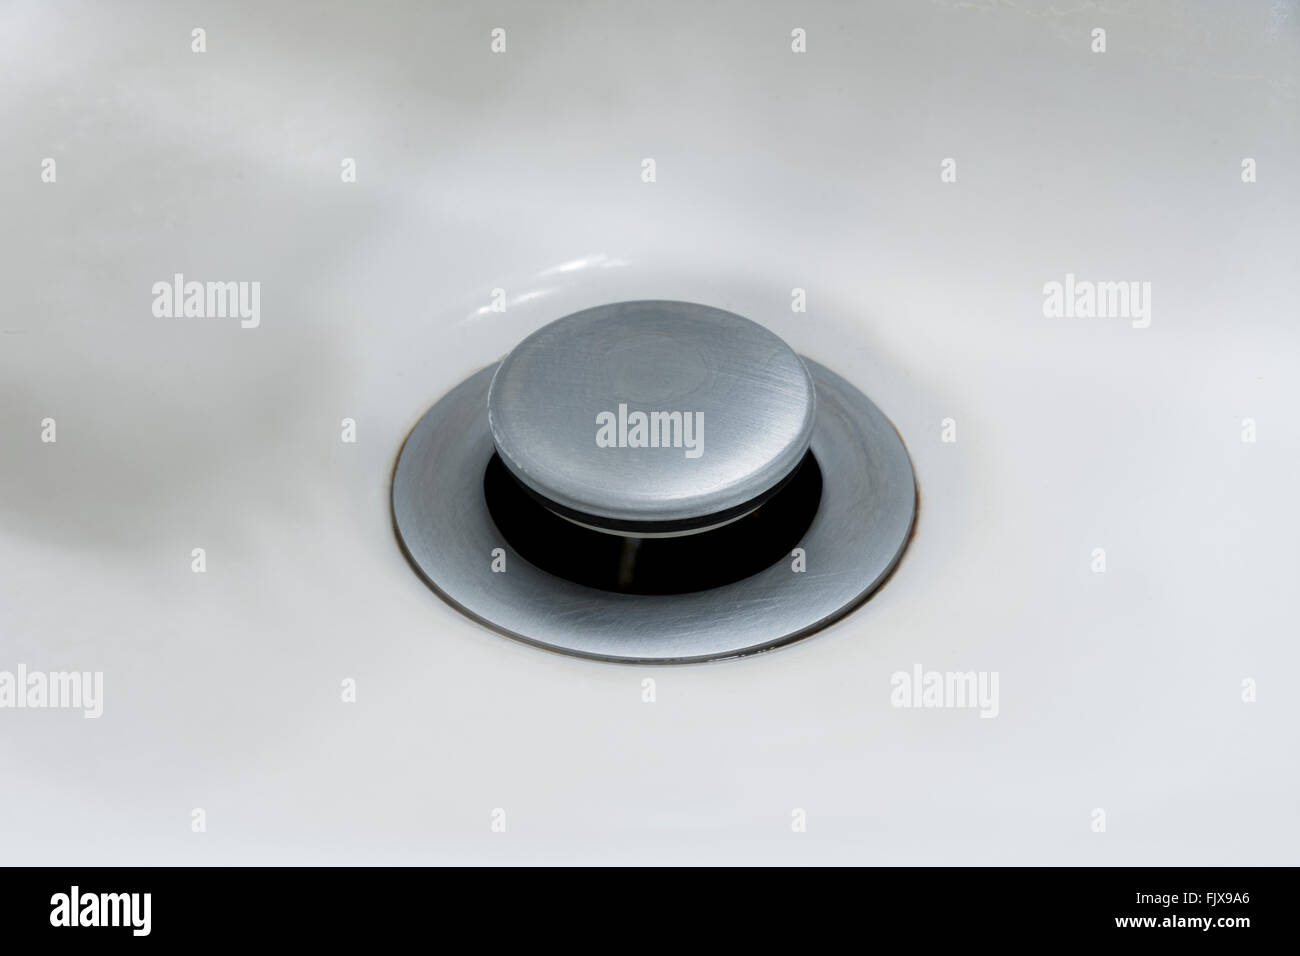 kitchen sink drain stopper hutch stock photos and images alamy